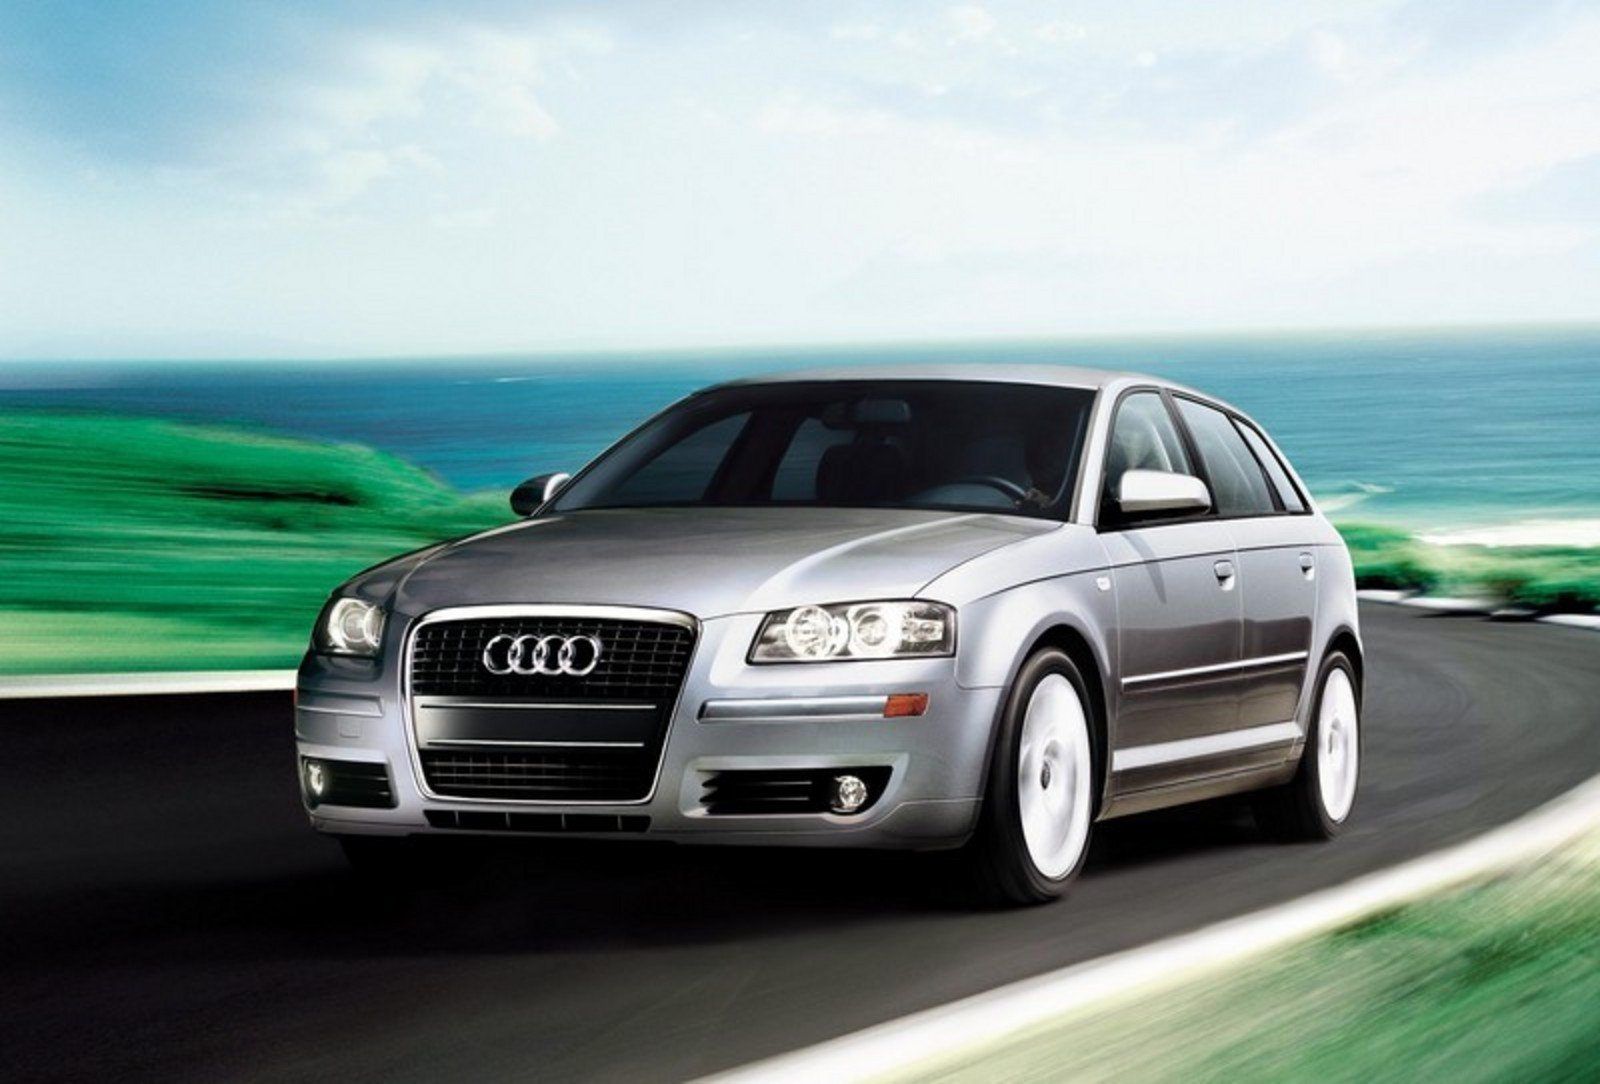 2006 audi a3 review top speed. Black Bedroom Furniture Sets. Home Design Ideas